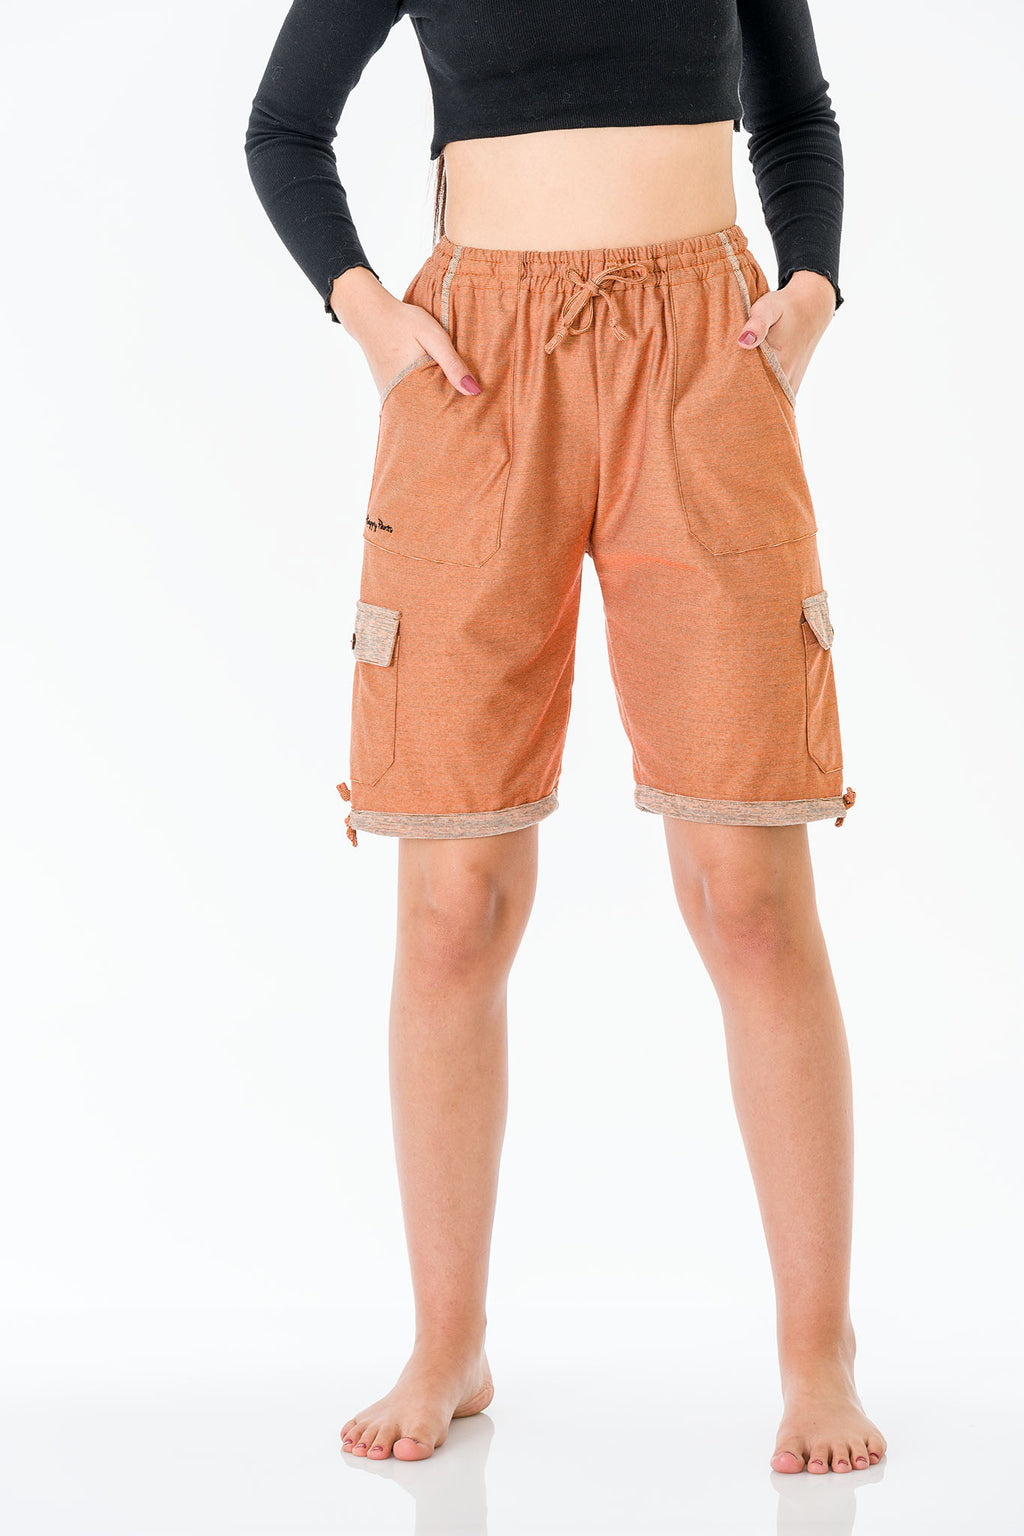 Urulu Orange Three Quarter Shorts